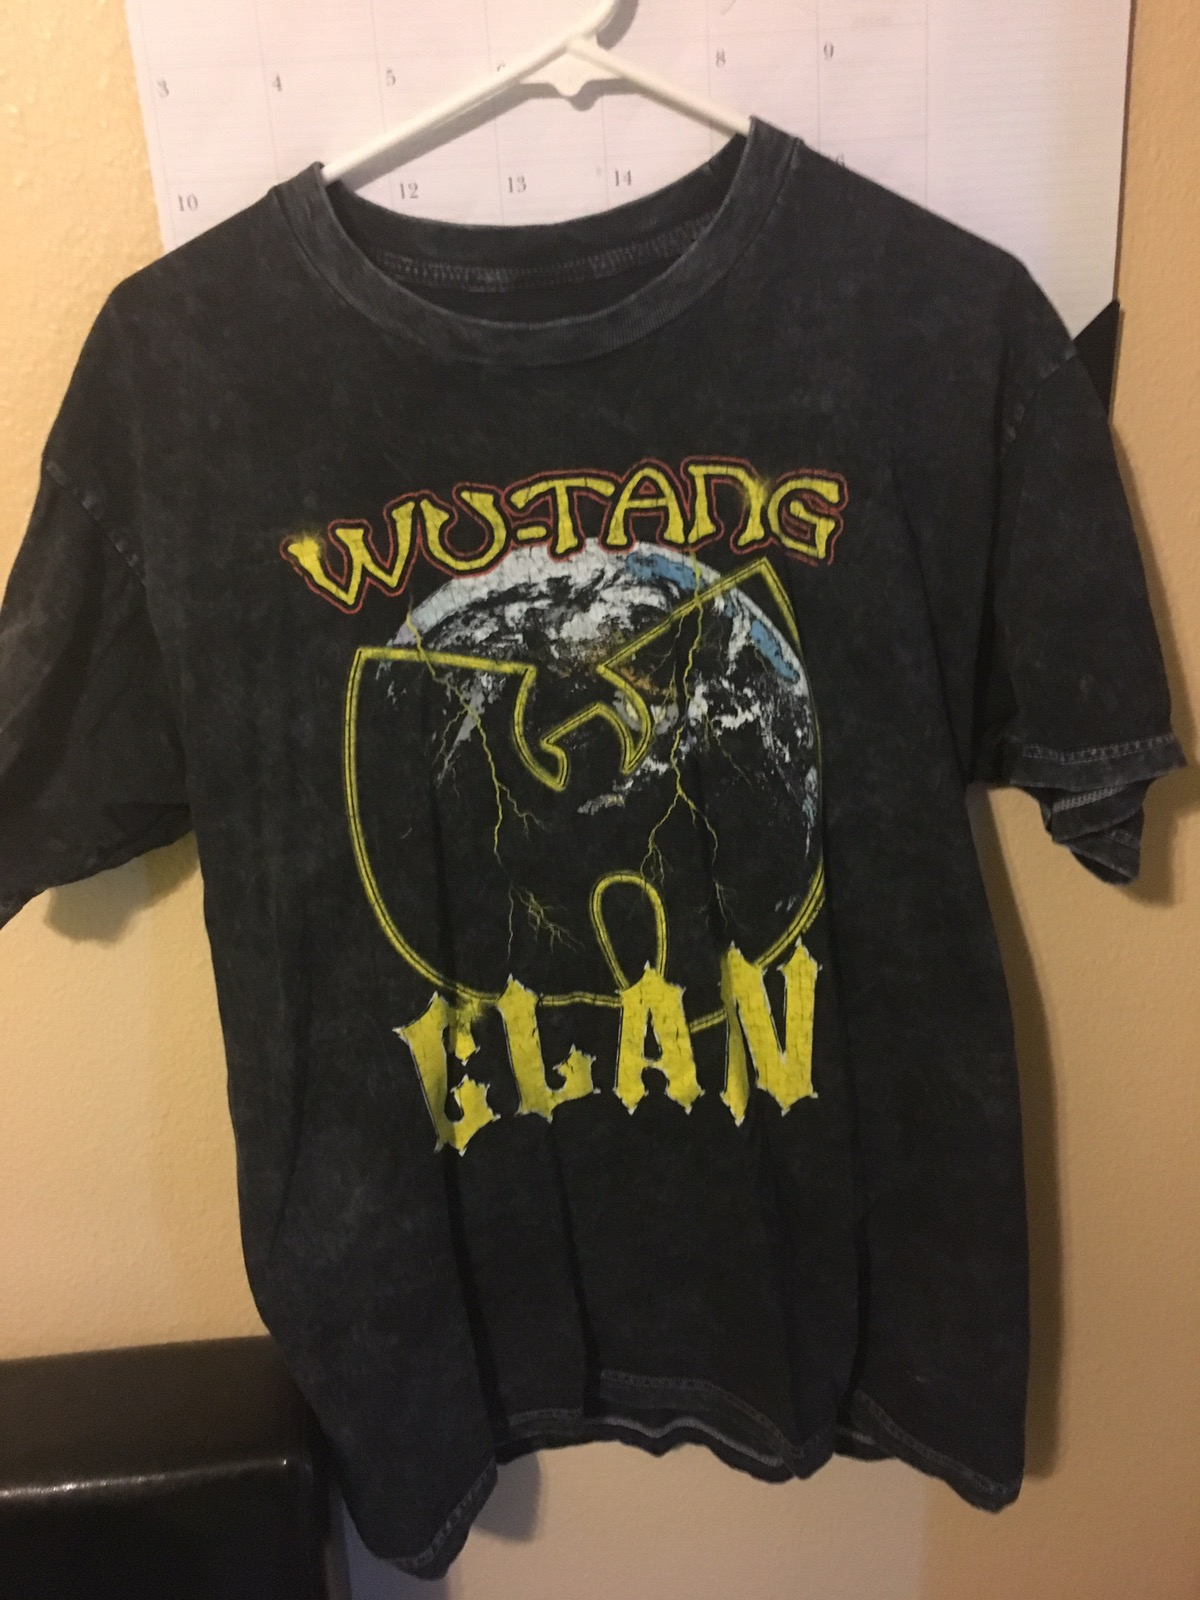 394f3a37ab9 Pacsun Pacsun Wutang Tie Dye Shirt Size m - Short Sleeve T-Shirts for Sale  - Grailed